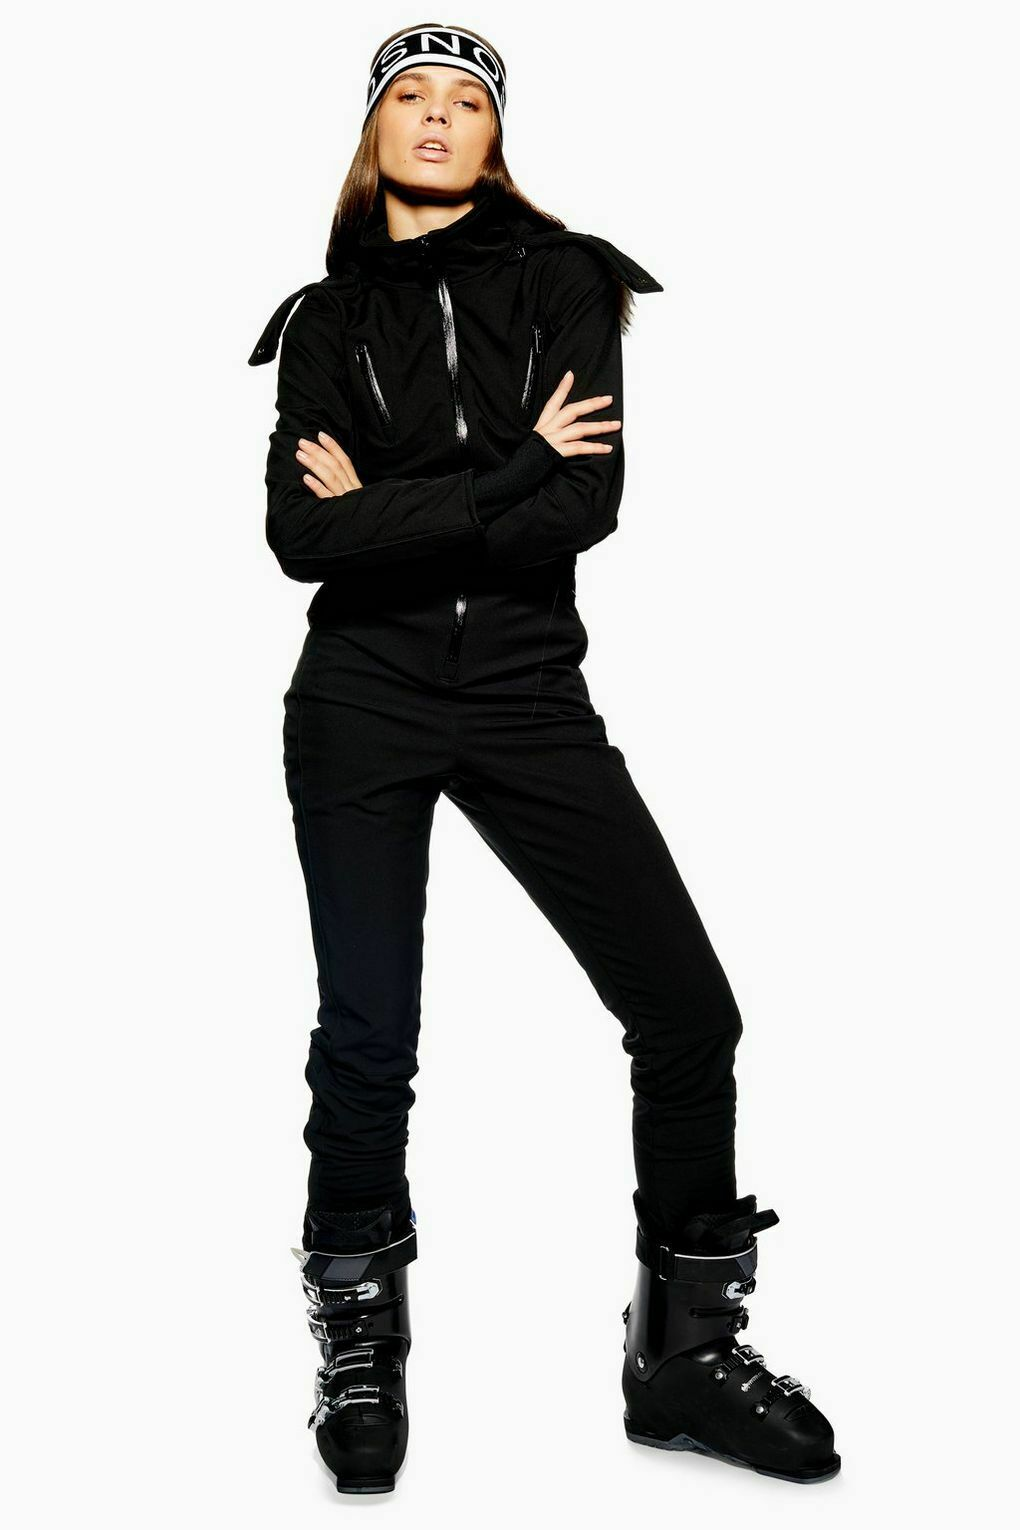 woman in black all in one ski suit